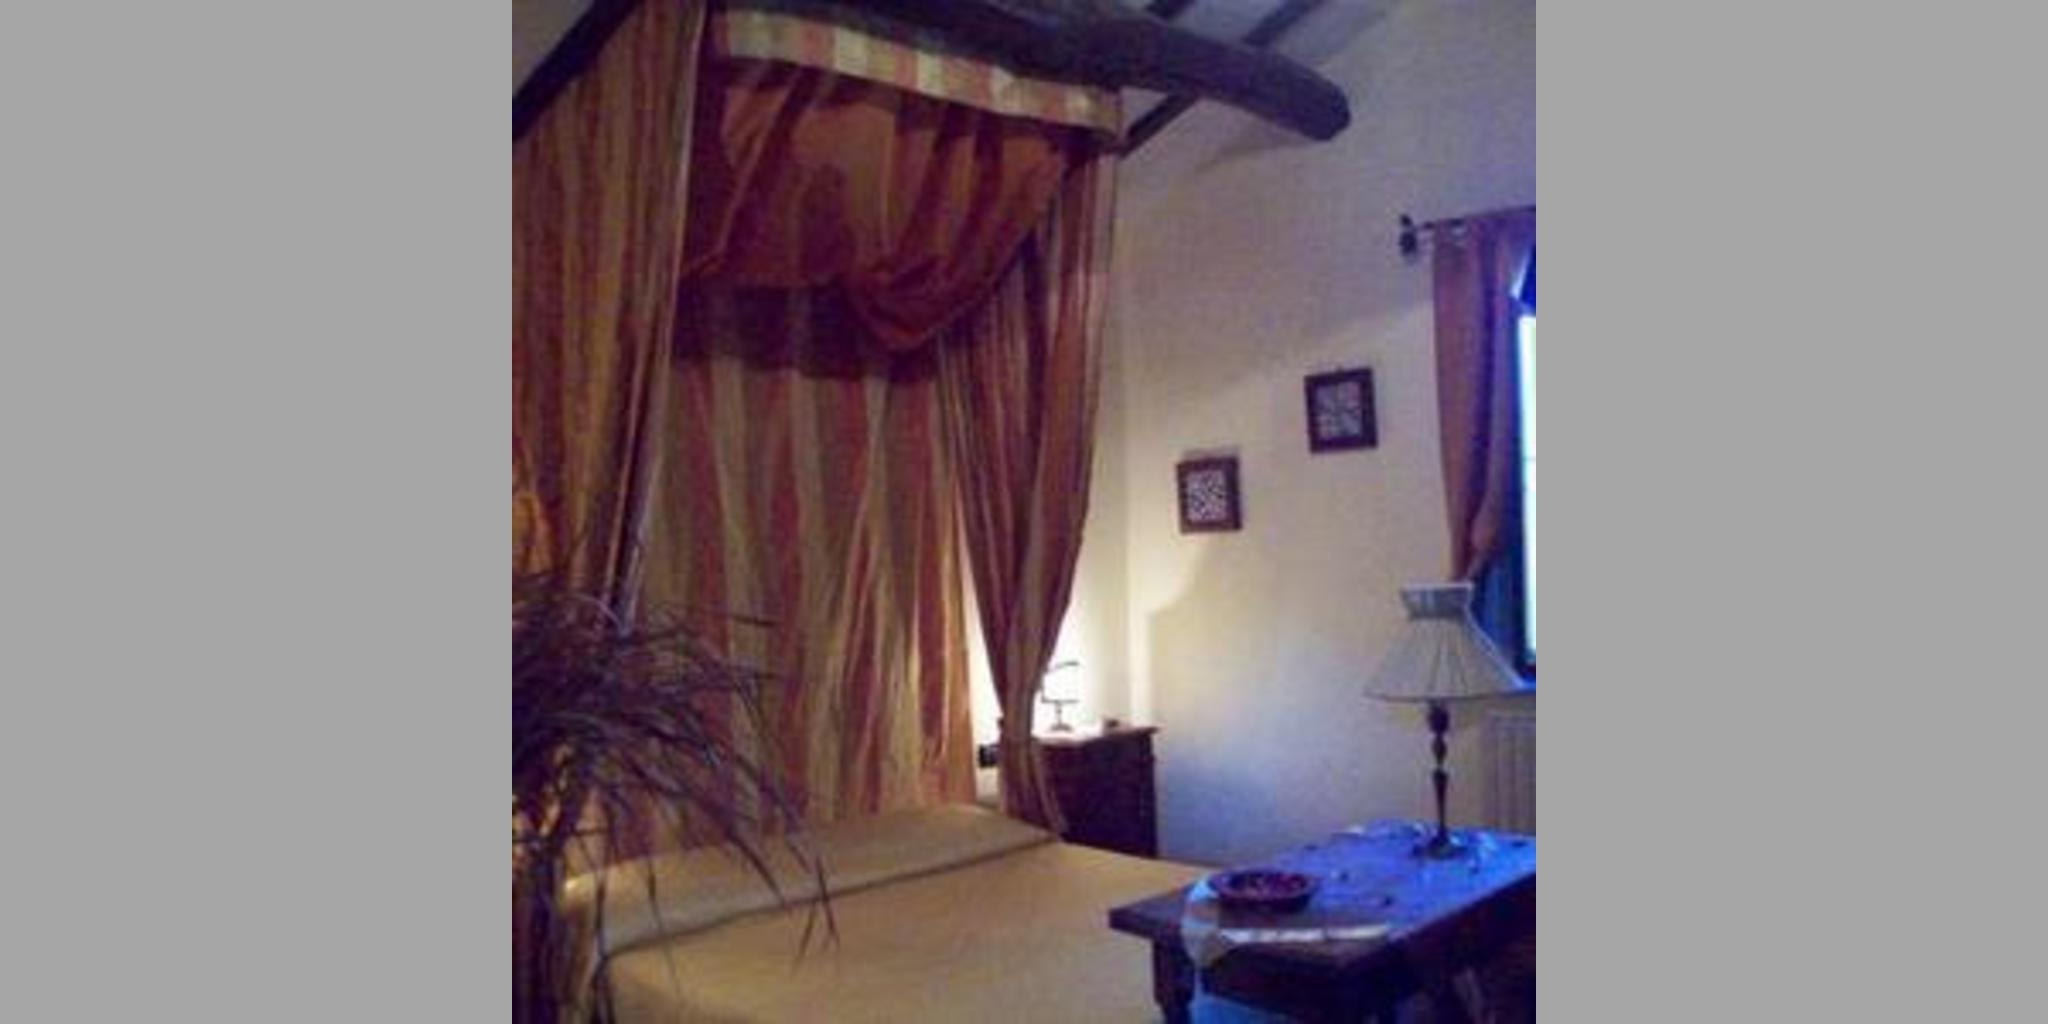 Bed & Breakfast Magliano Sabina - Vocabolo Colle Pineto